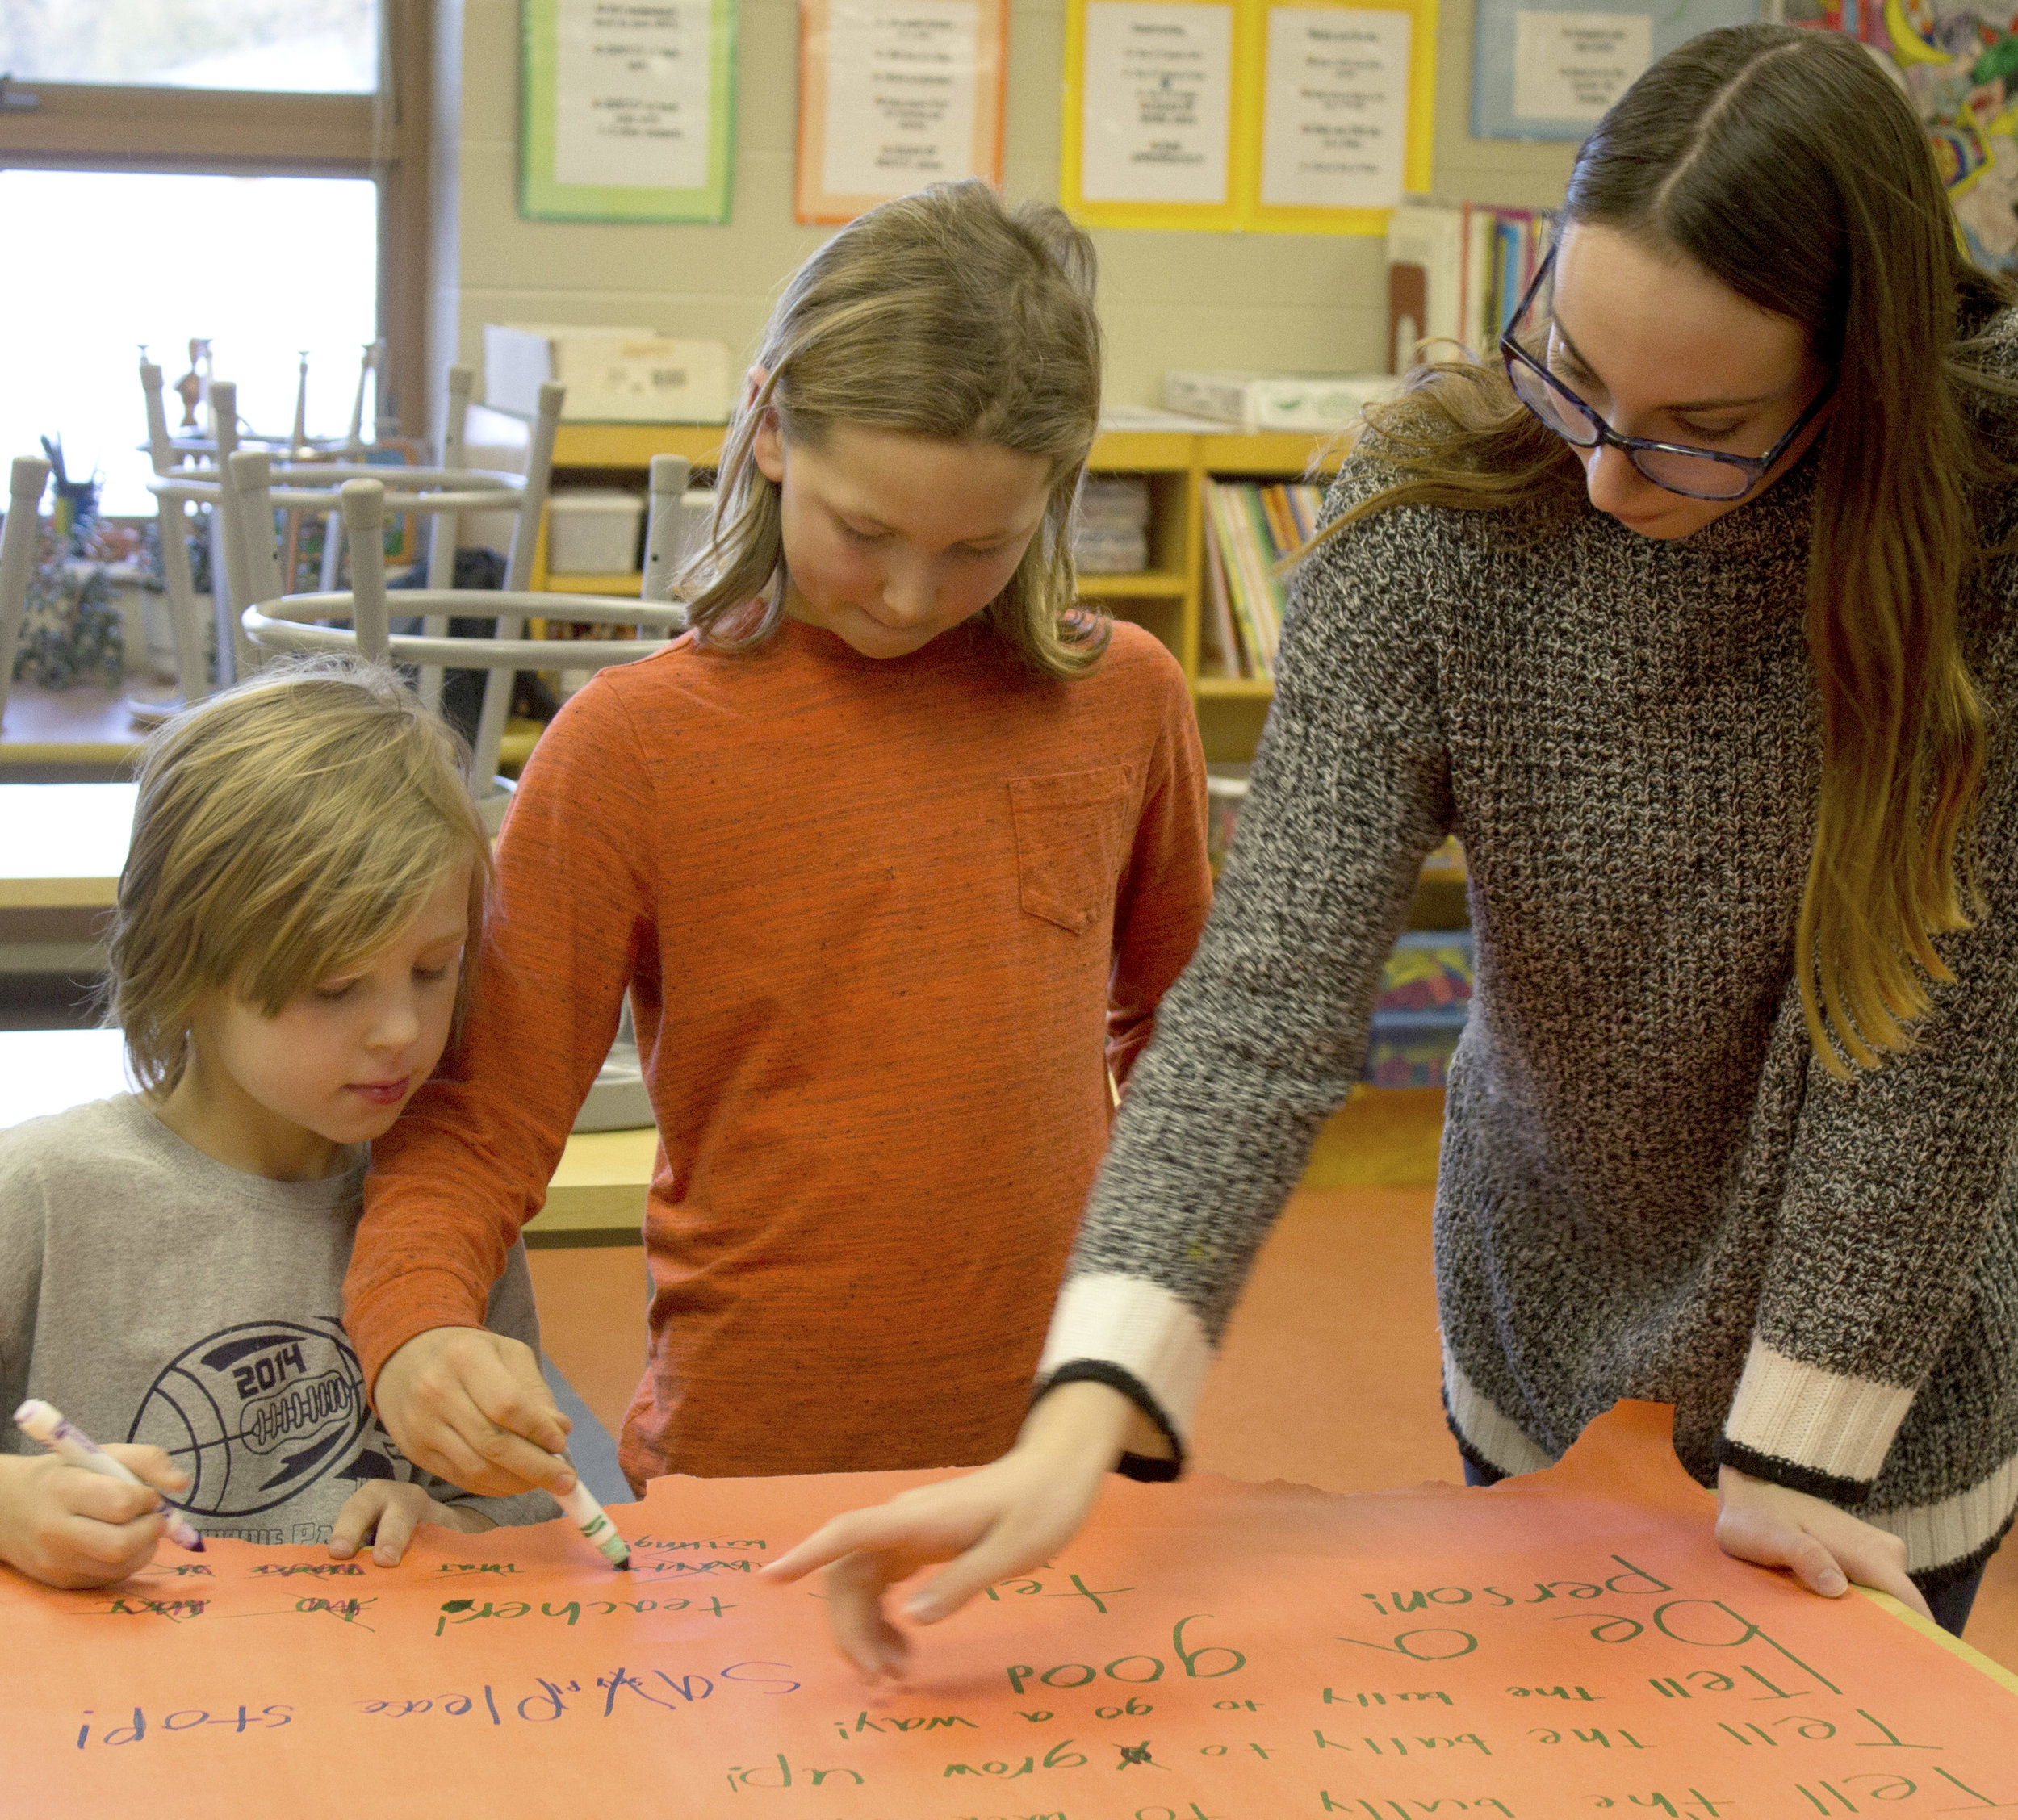 Leah Corso  UW-Stout Early Childhood Education INTERNSHIP: Making Stories Come Alive at the Boys and Girls Club LOCATION: River Heights Elementary